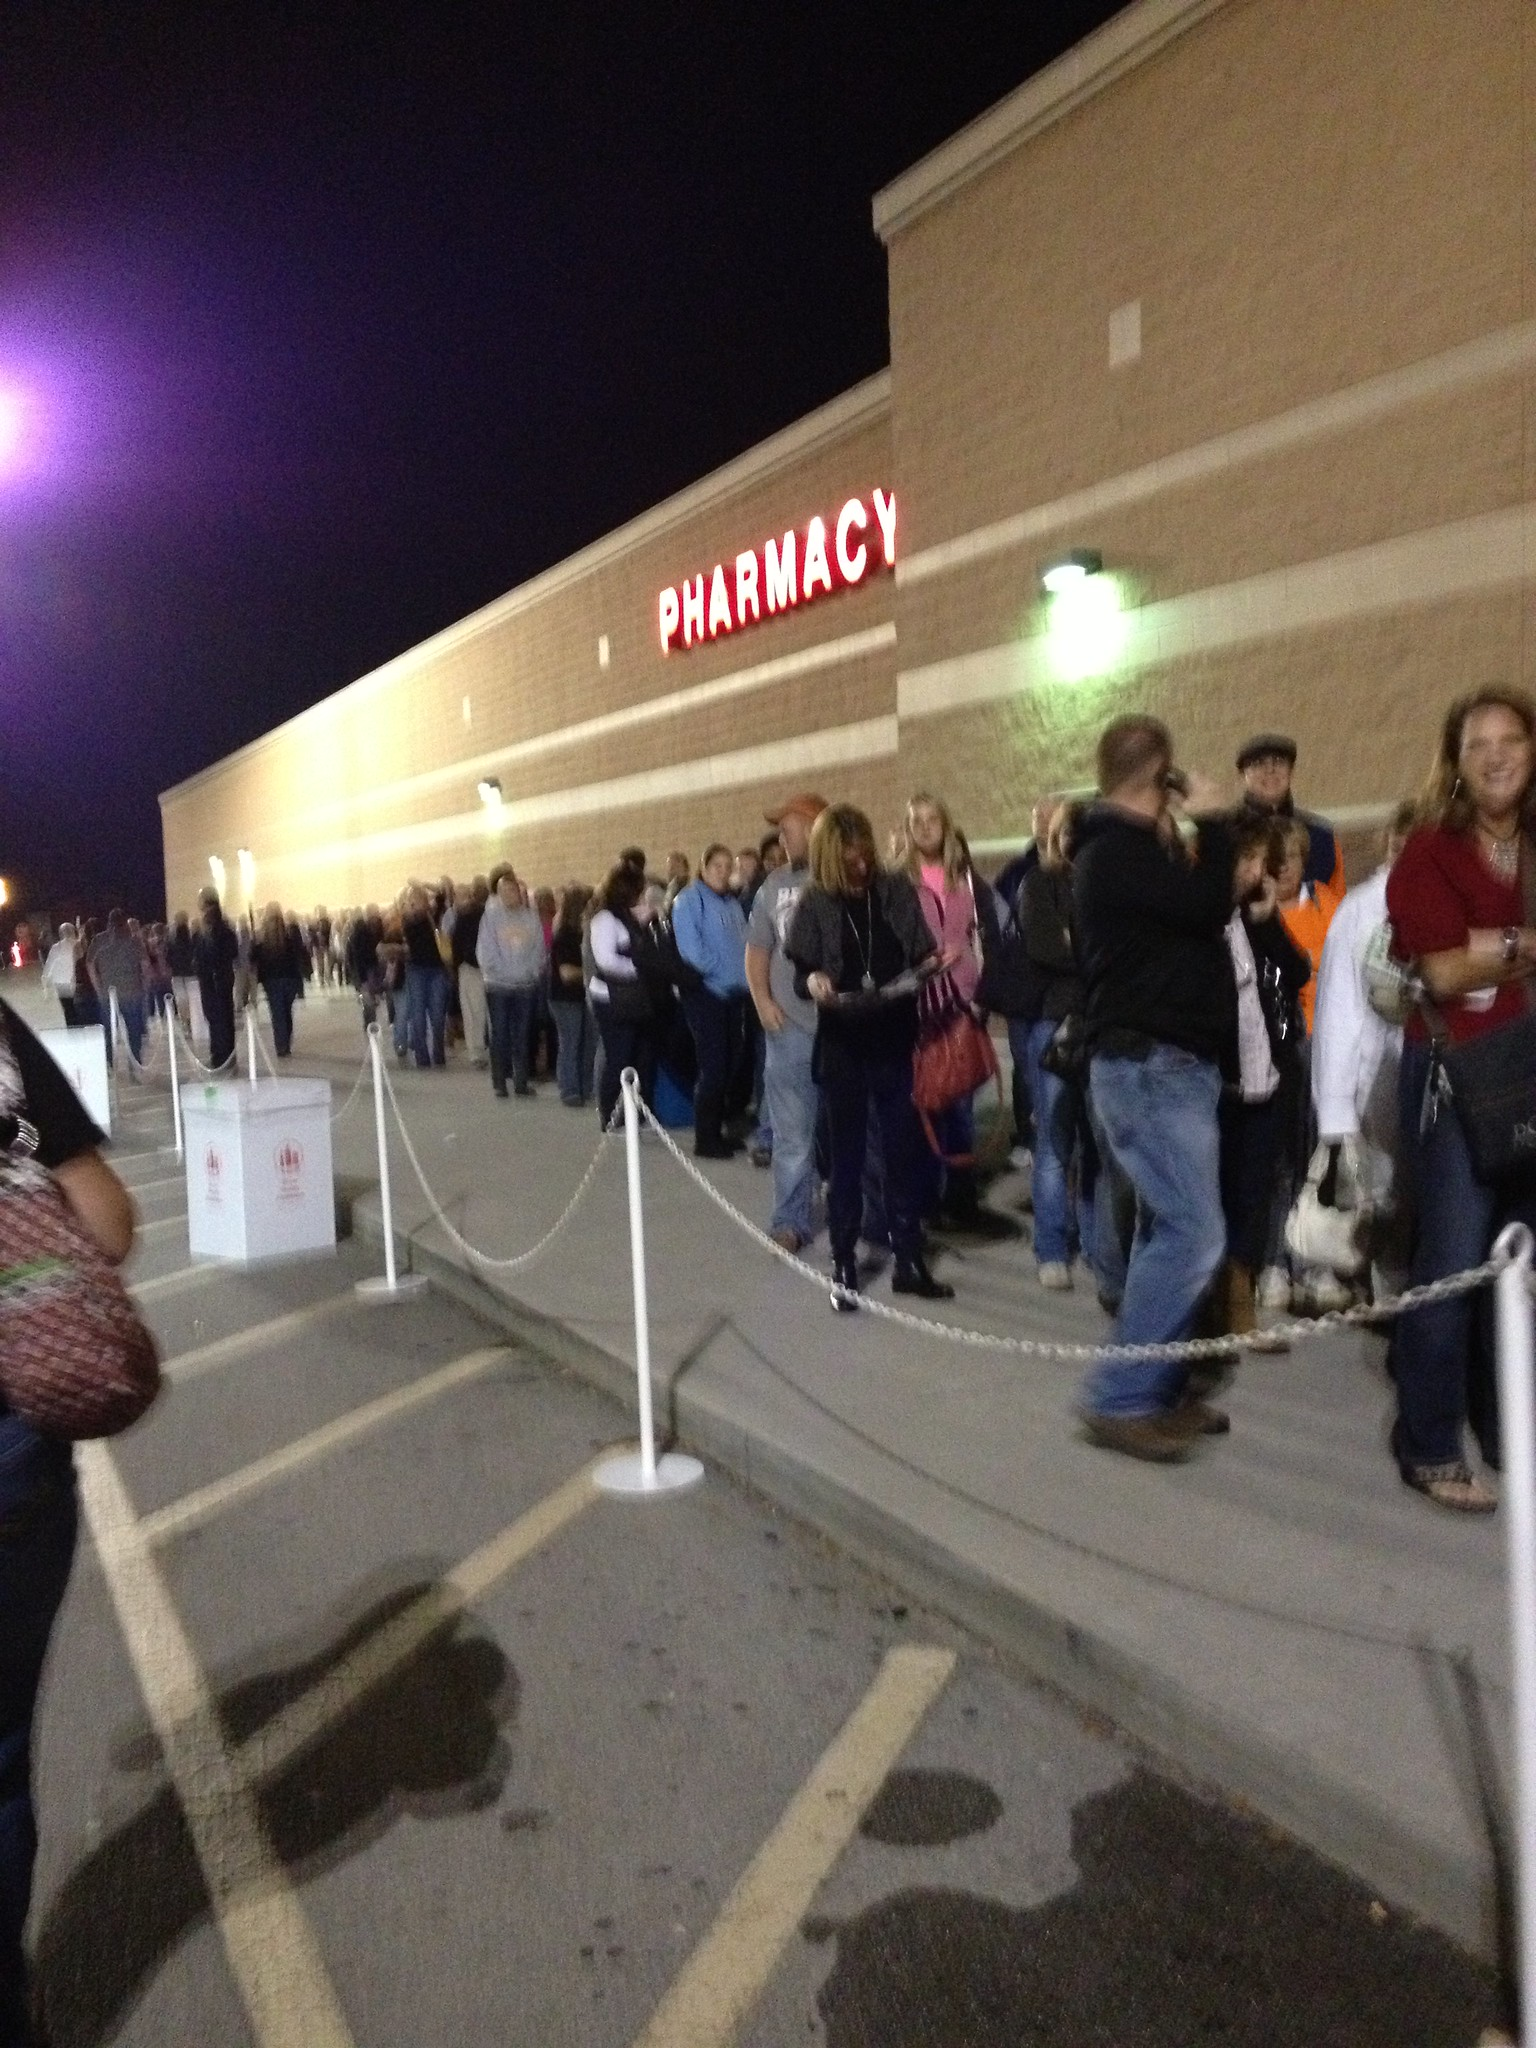 Seems Black Friday just turned into Black Thursday night.